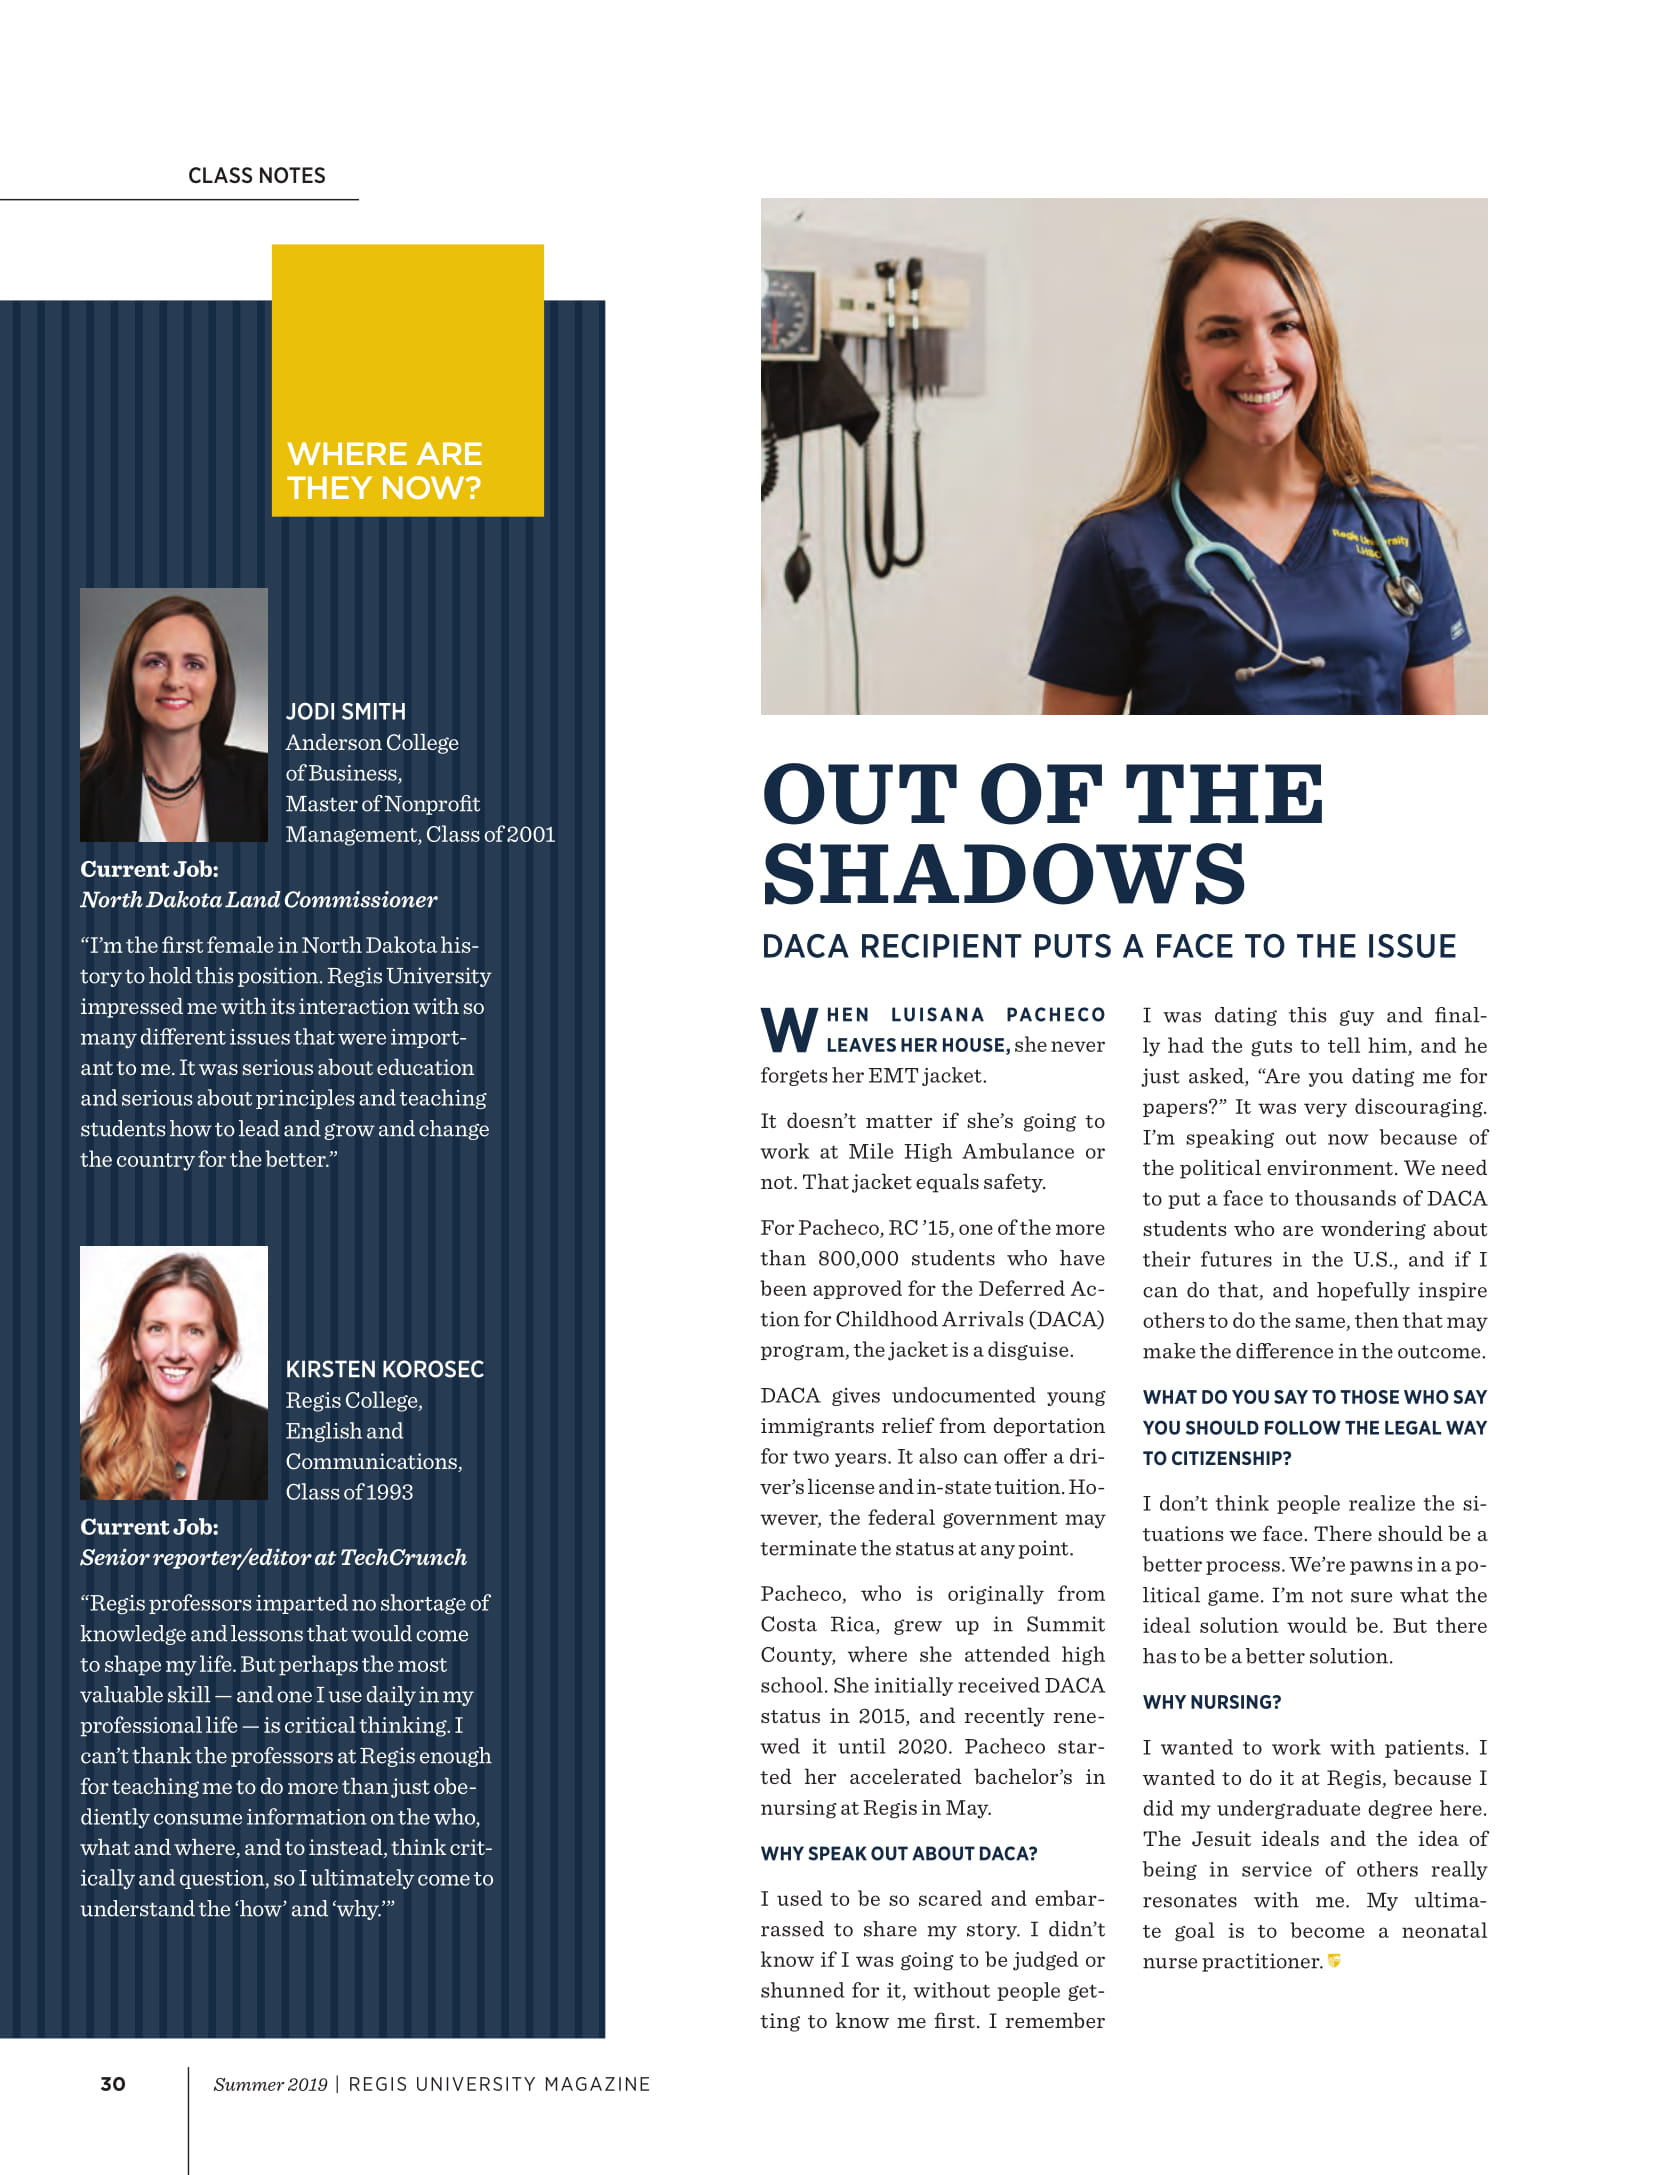 Summit County Dreamer and nursing student Lu Pacheco featured in Regis University Magazine.